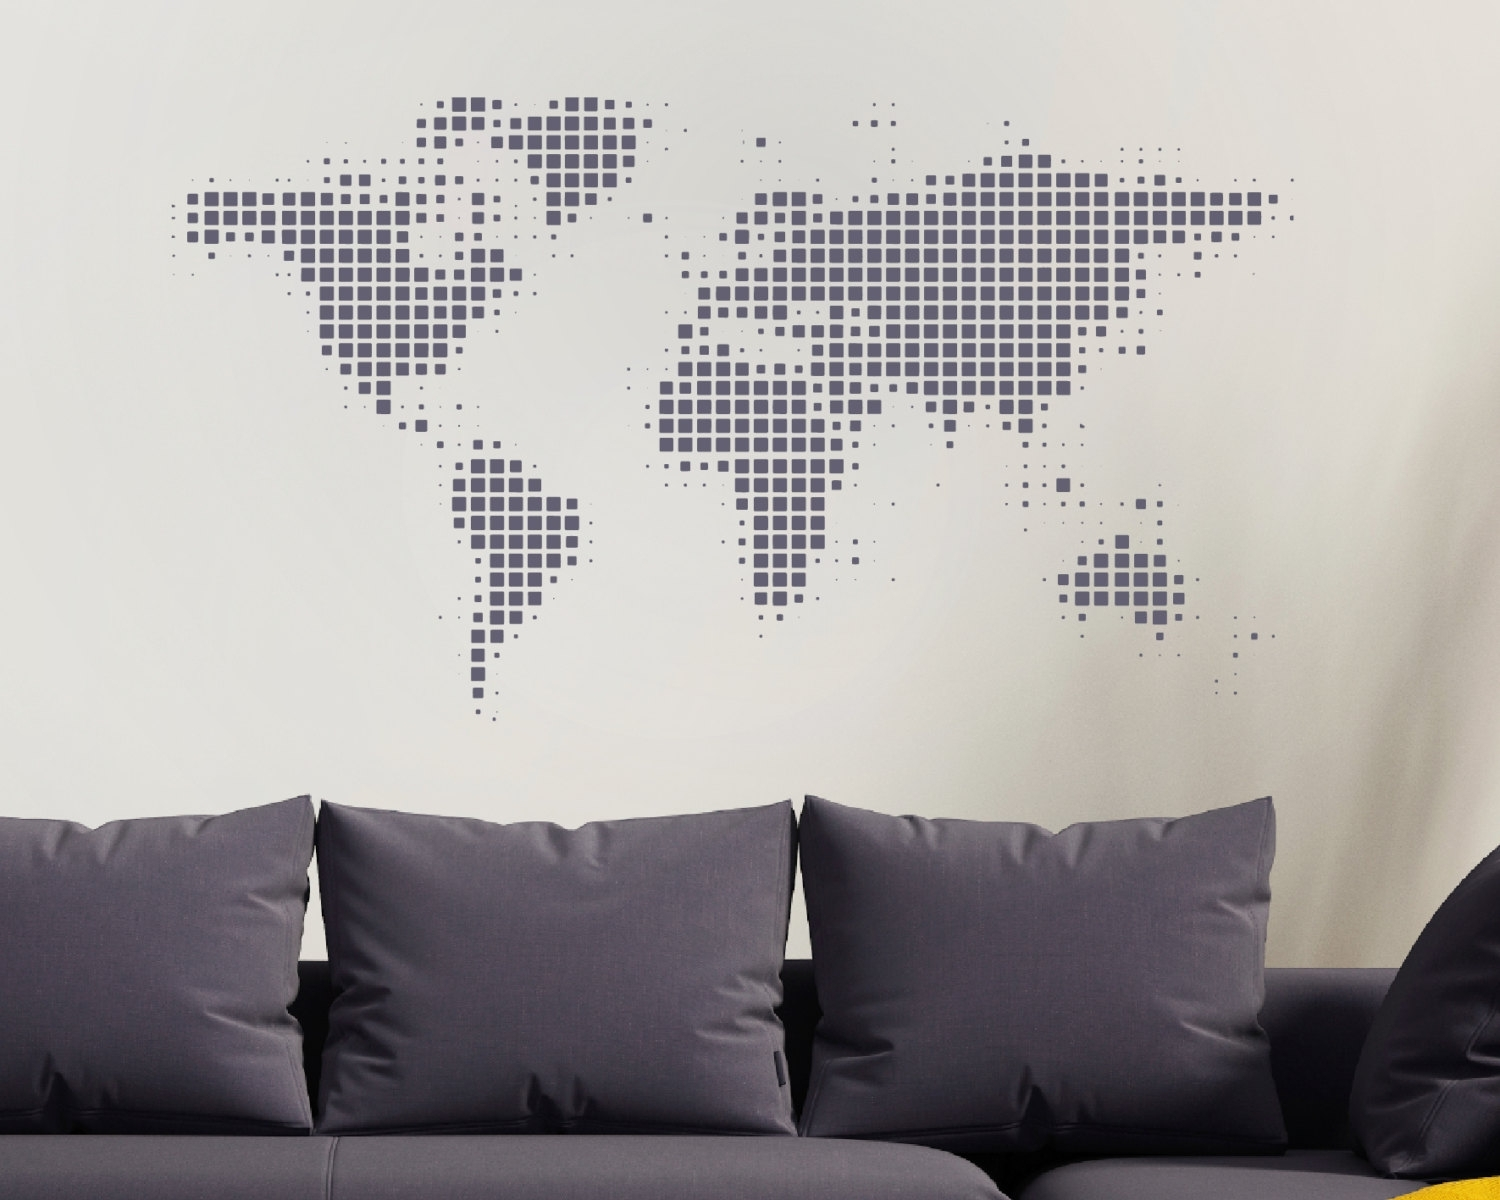 World Map Wall Sticker - World Wall Sticker - World Map - World intended for Maps Wall Art (Image 18 of 20)